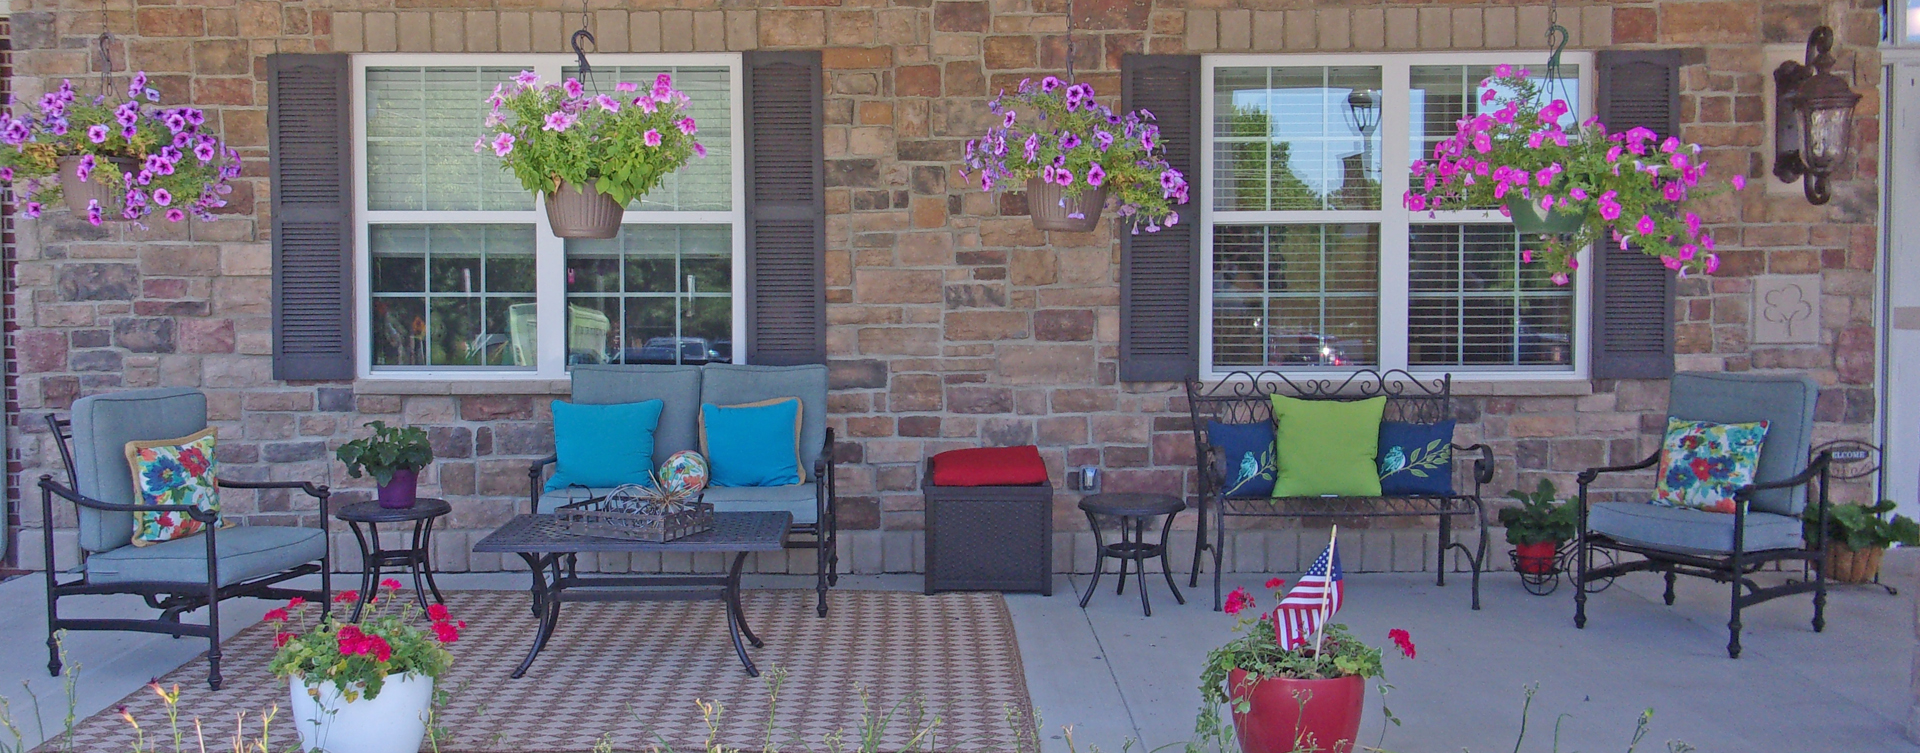 Enjoy conversations with friends on the porch at Bickford of Chesterfield